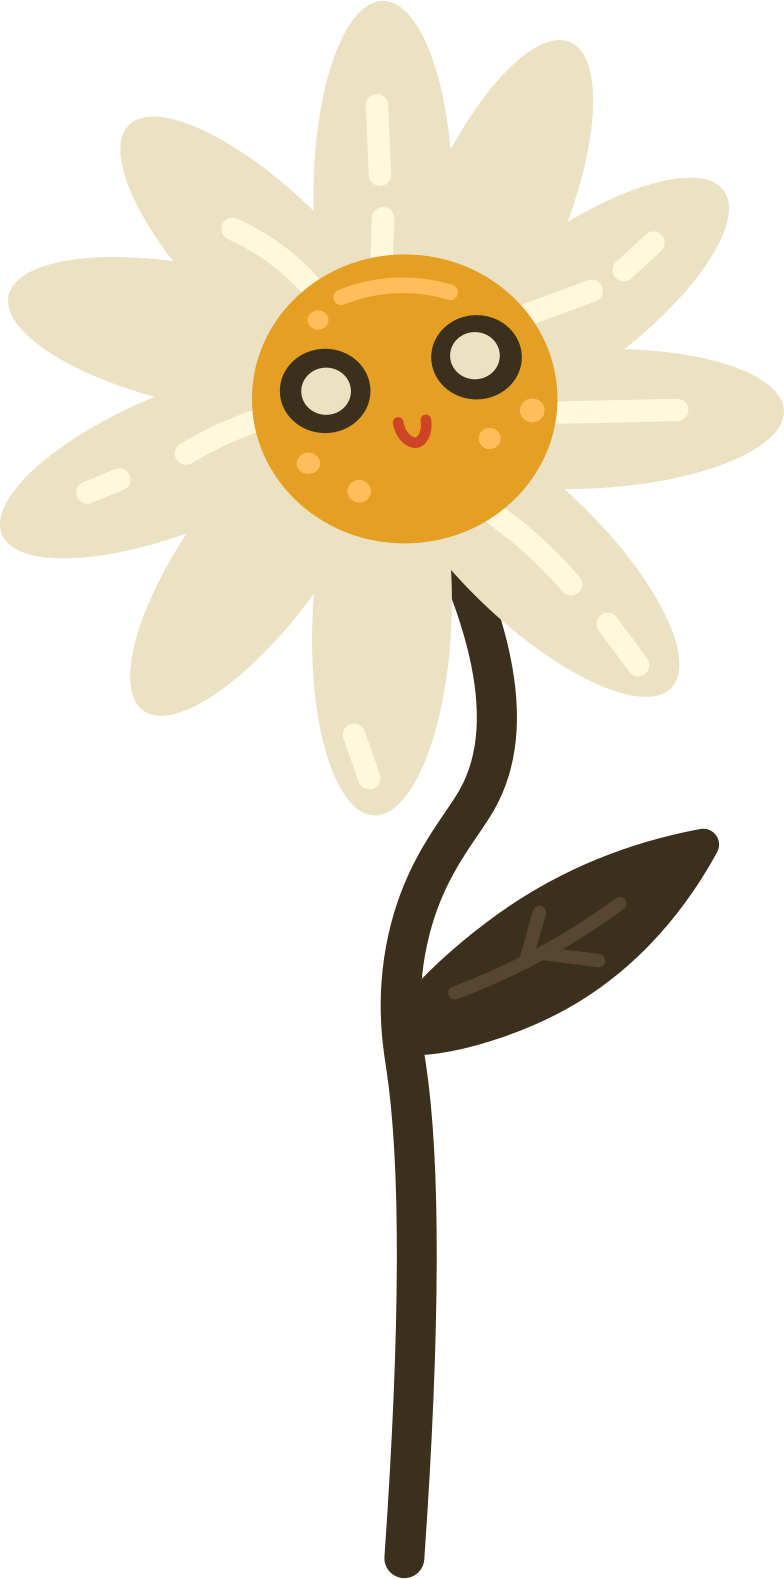 style daisy Vector images in PNG and SVG | Icons8 Illustrations